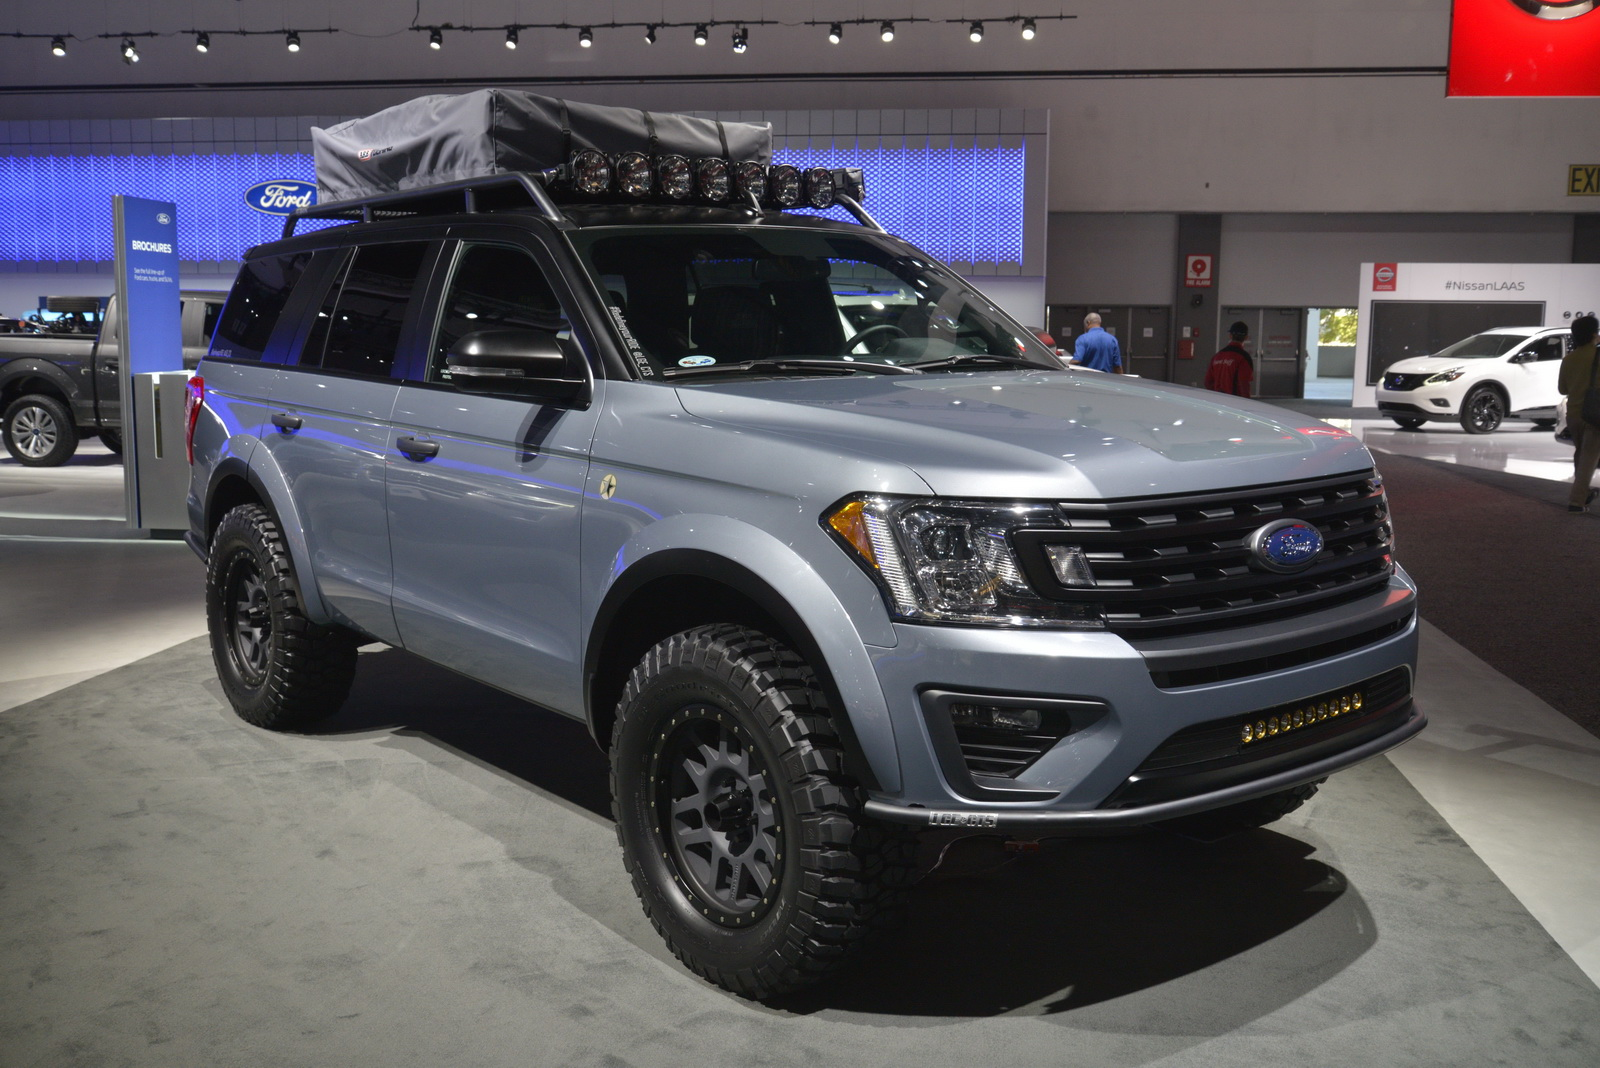 ford expedition baja forged adventurer winks at raptor loving families. Black Bedroom Furniture Sets. Home Design Ideas